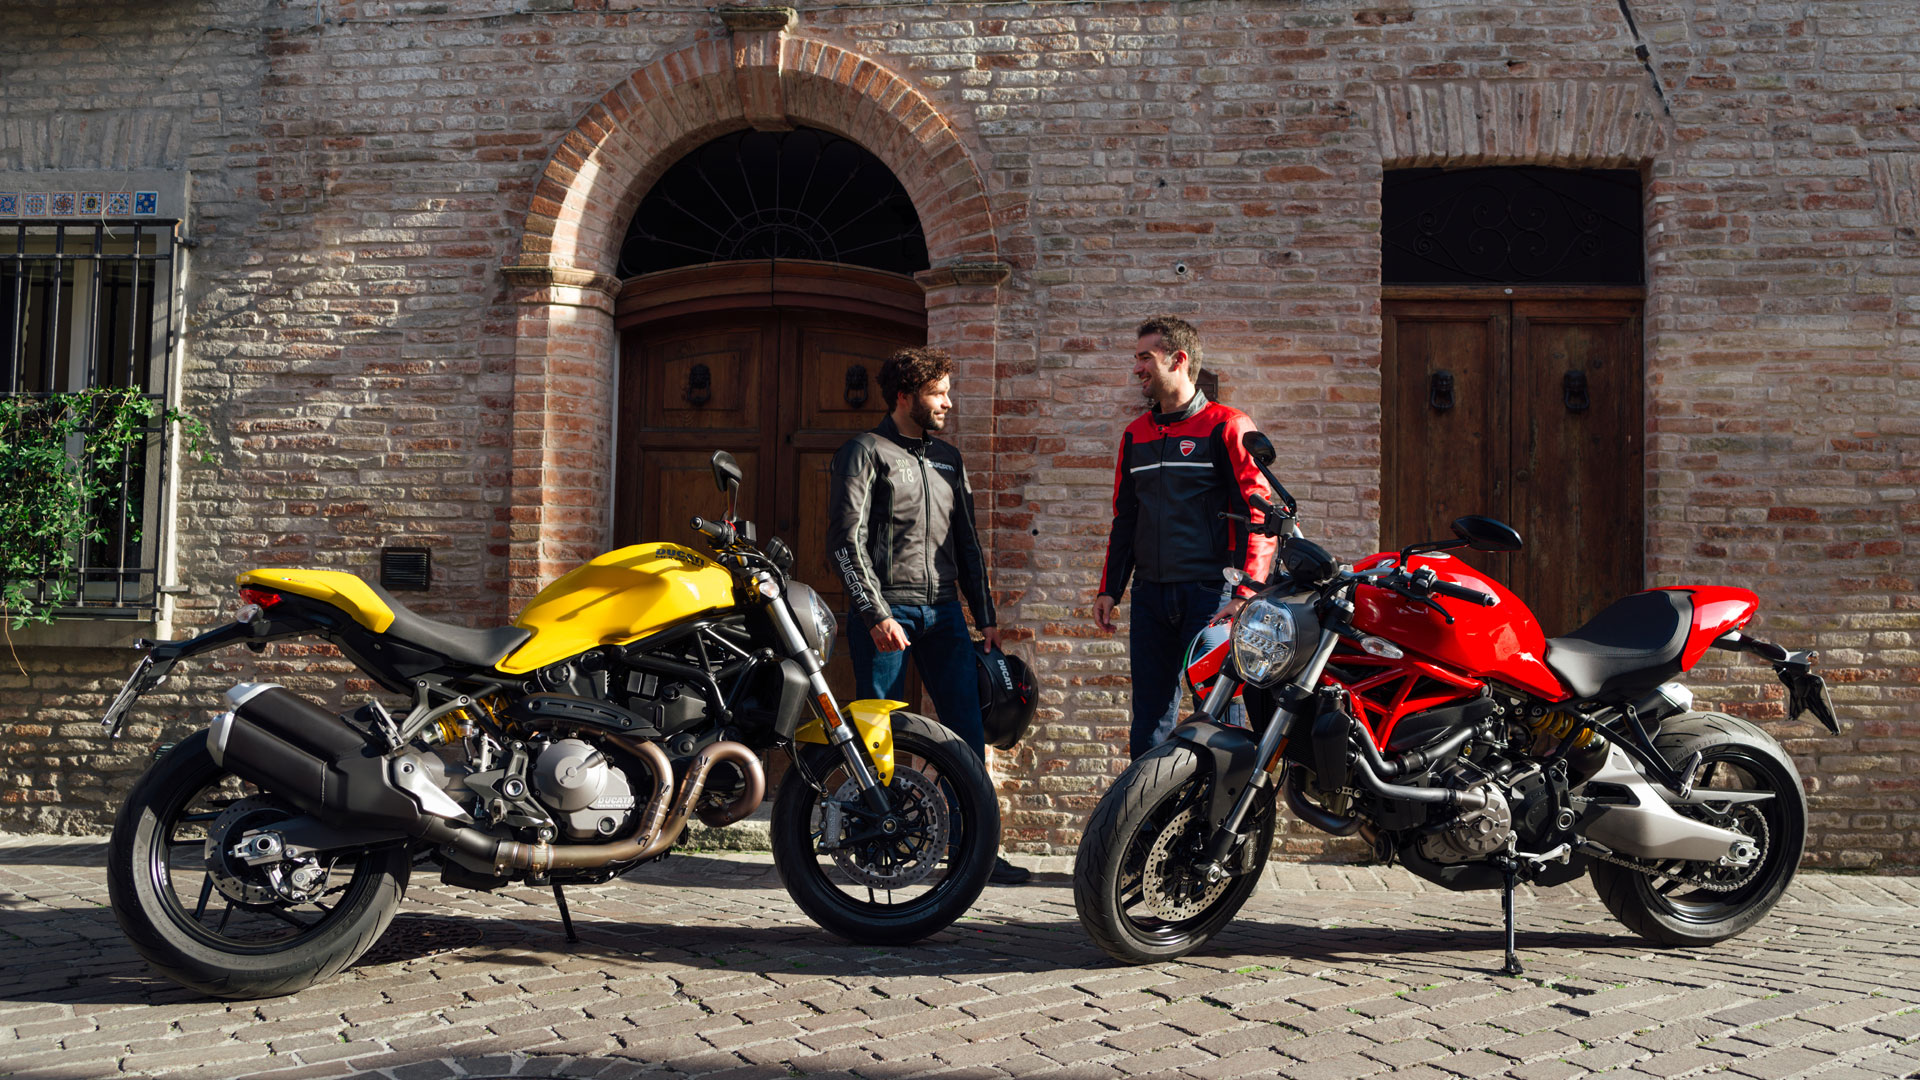 Ducati Monster 821 >> Ducati Monster 821 Monster 821 Stealth Naked Motorcycles By Ducati